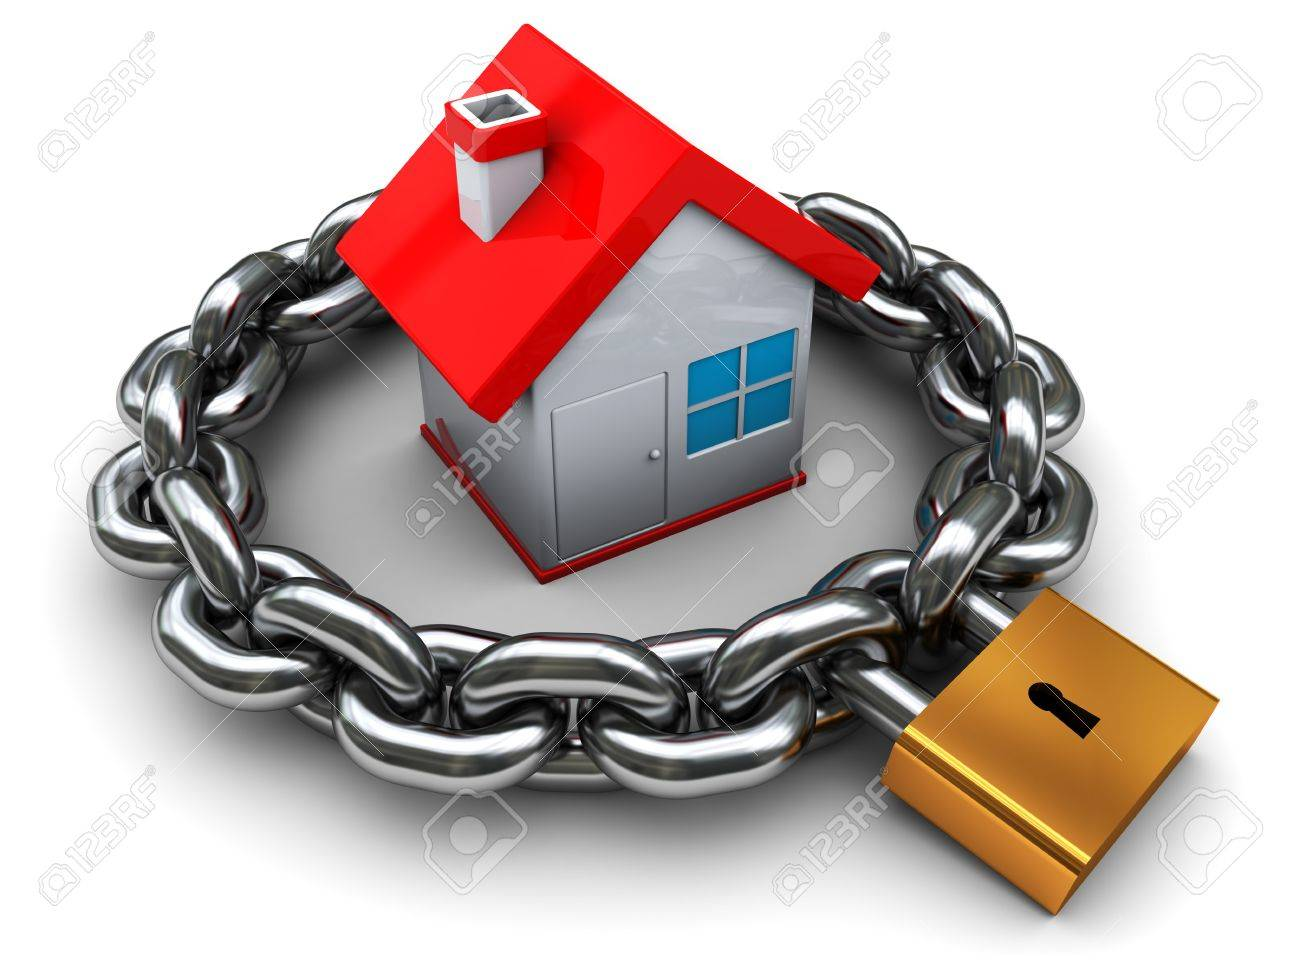 3d illustration of house with chain and padlock, home security concept Stock Photo - 6918087